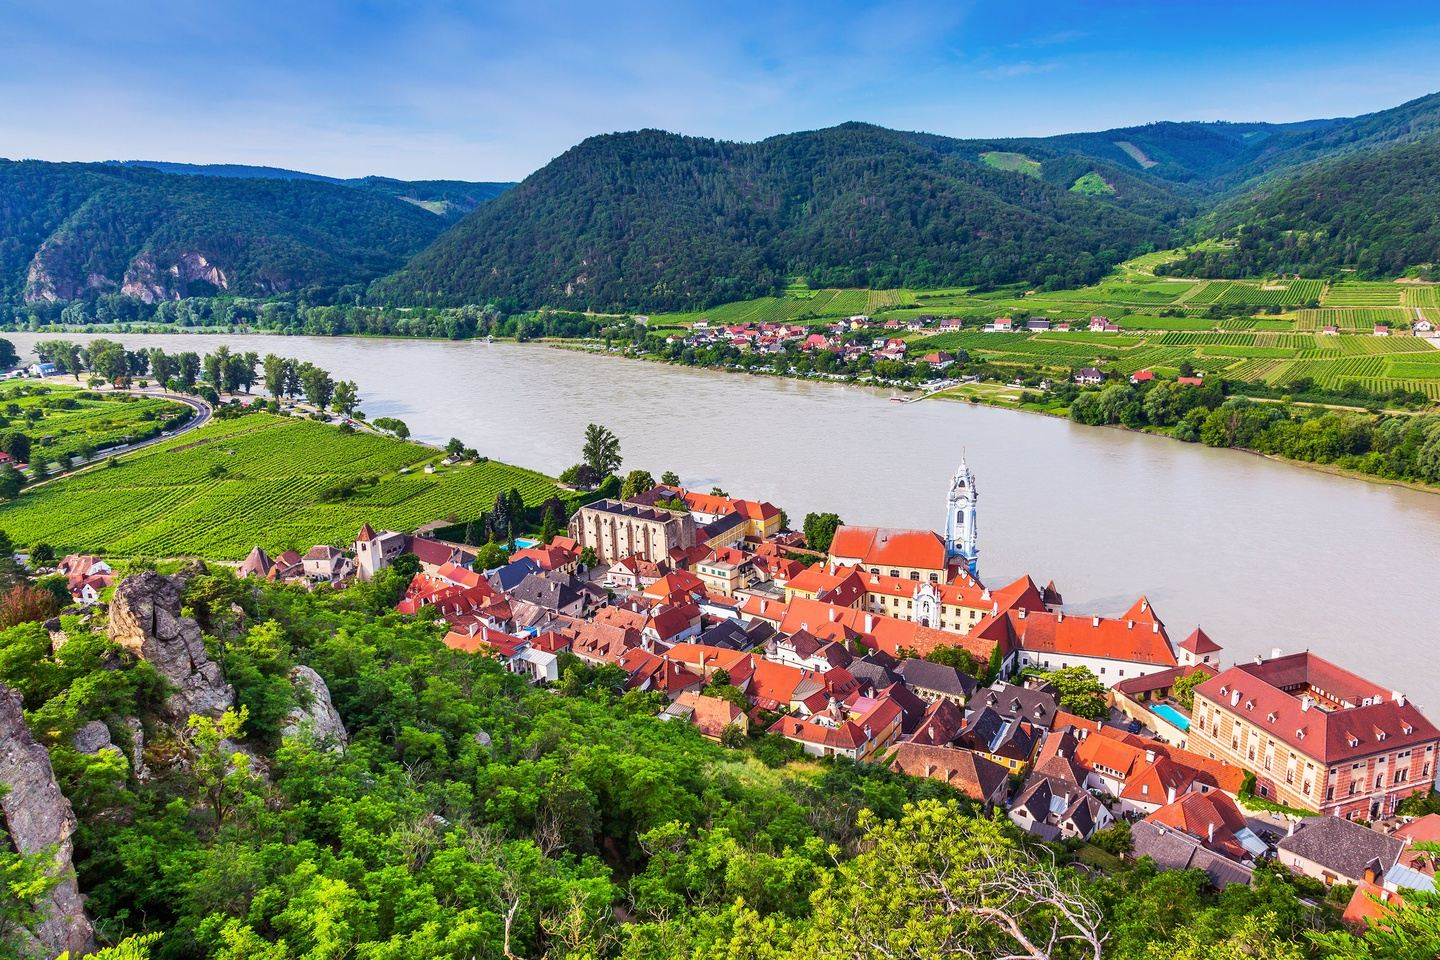 CME/CE Danube River Cruise: Medical/Dental Health & Well-Being Updates